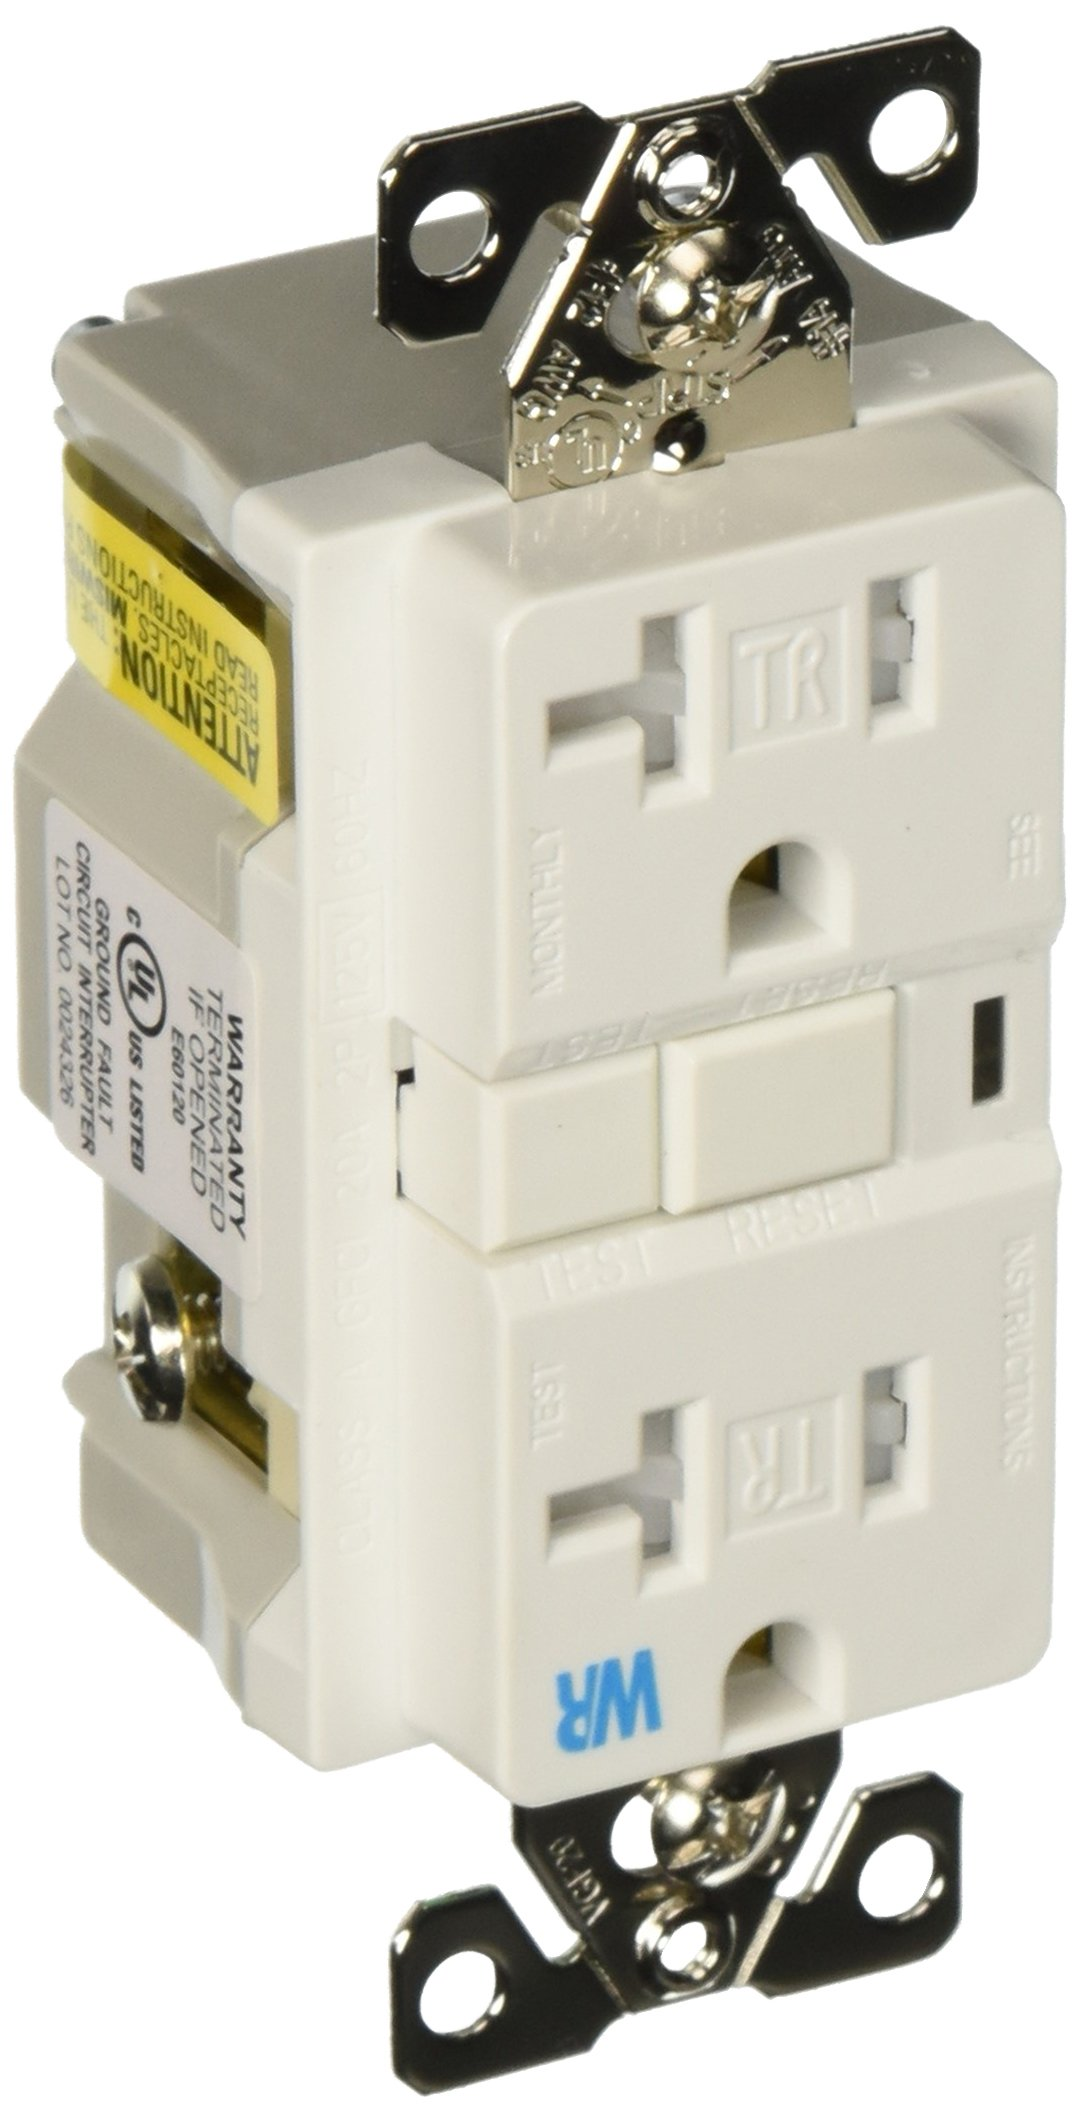 cheap eaton circuit find eaton circuit deals on line at alibaba com rh guide alibaba com